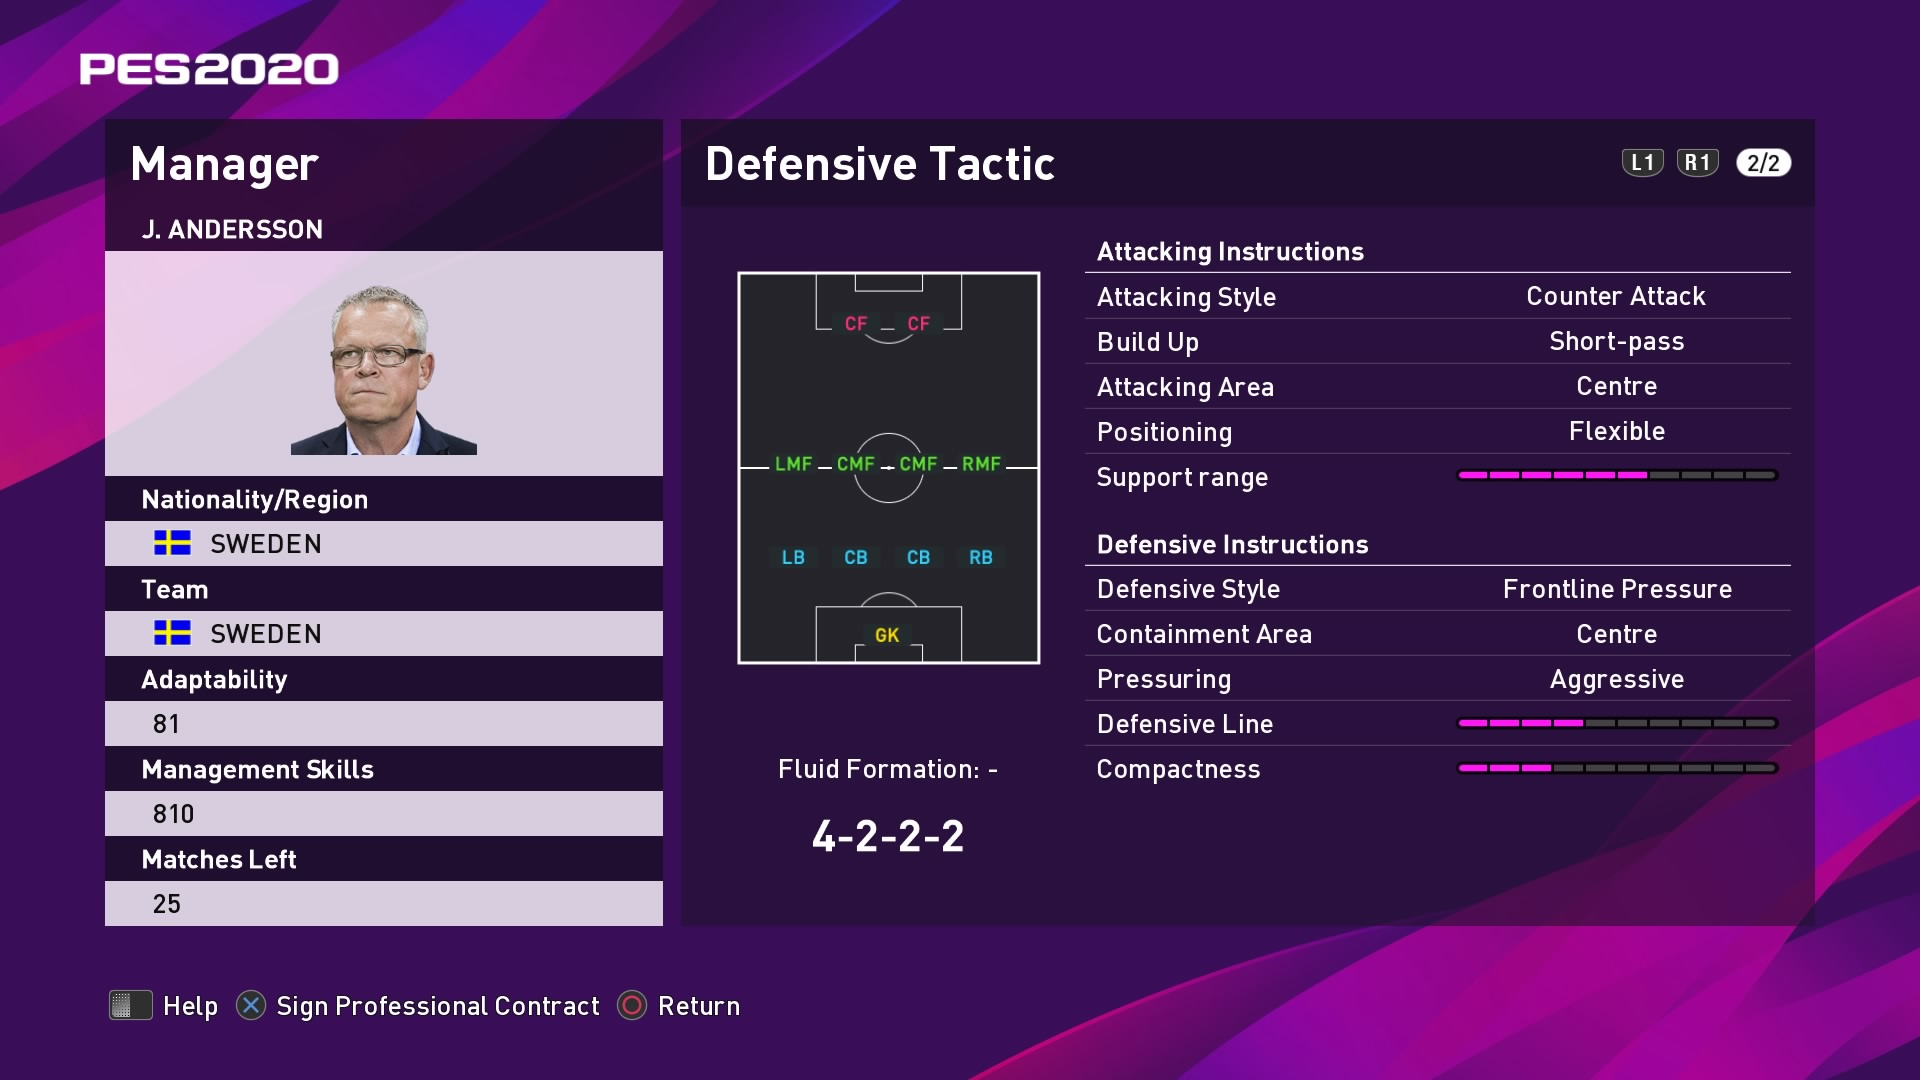 J. Andersson (2) (Janne Andersson) Defensive Tactic in PES 2020 myClub